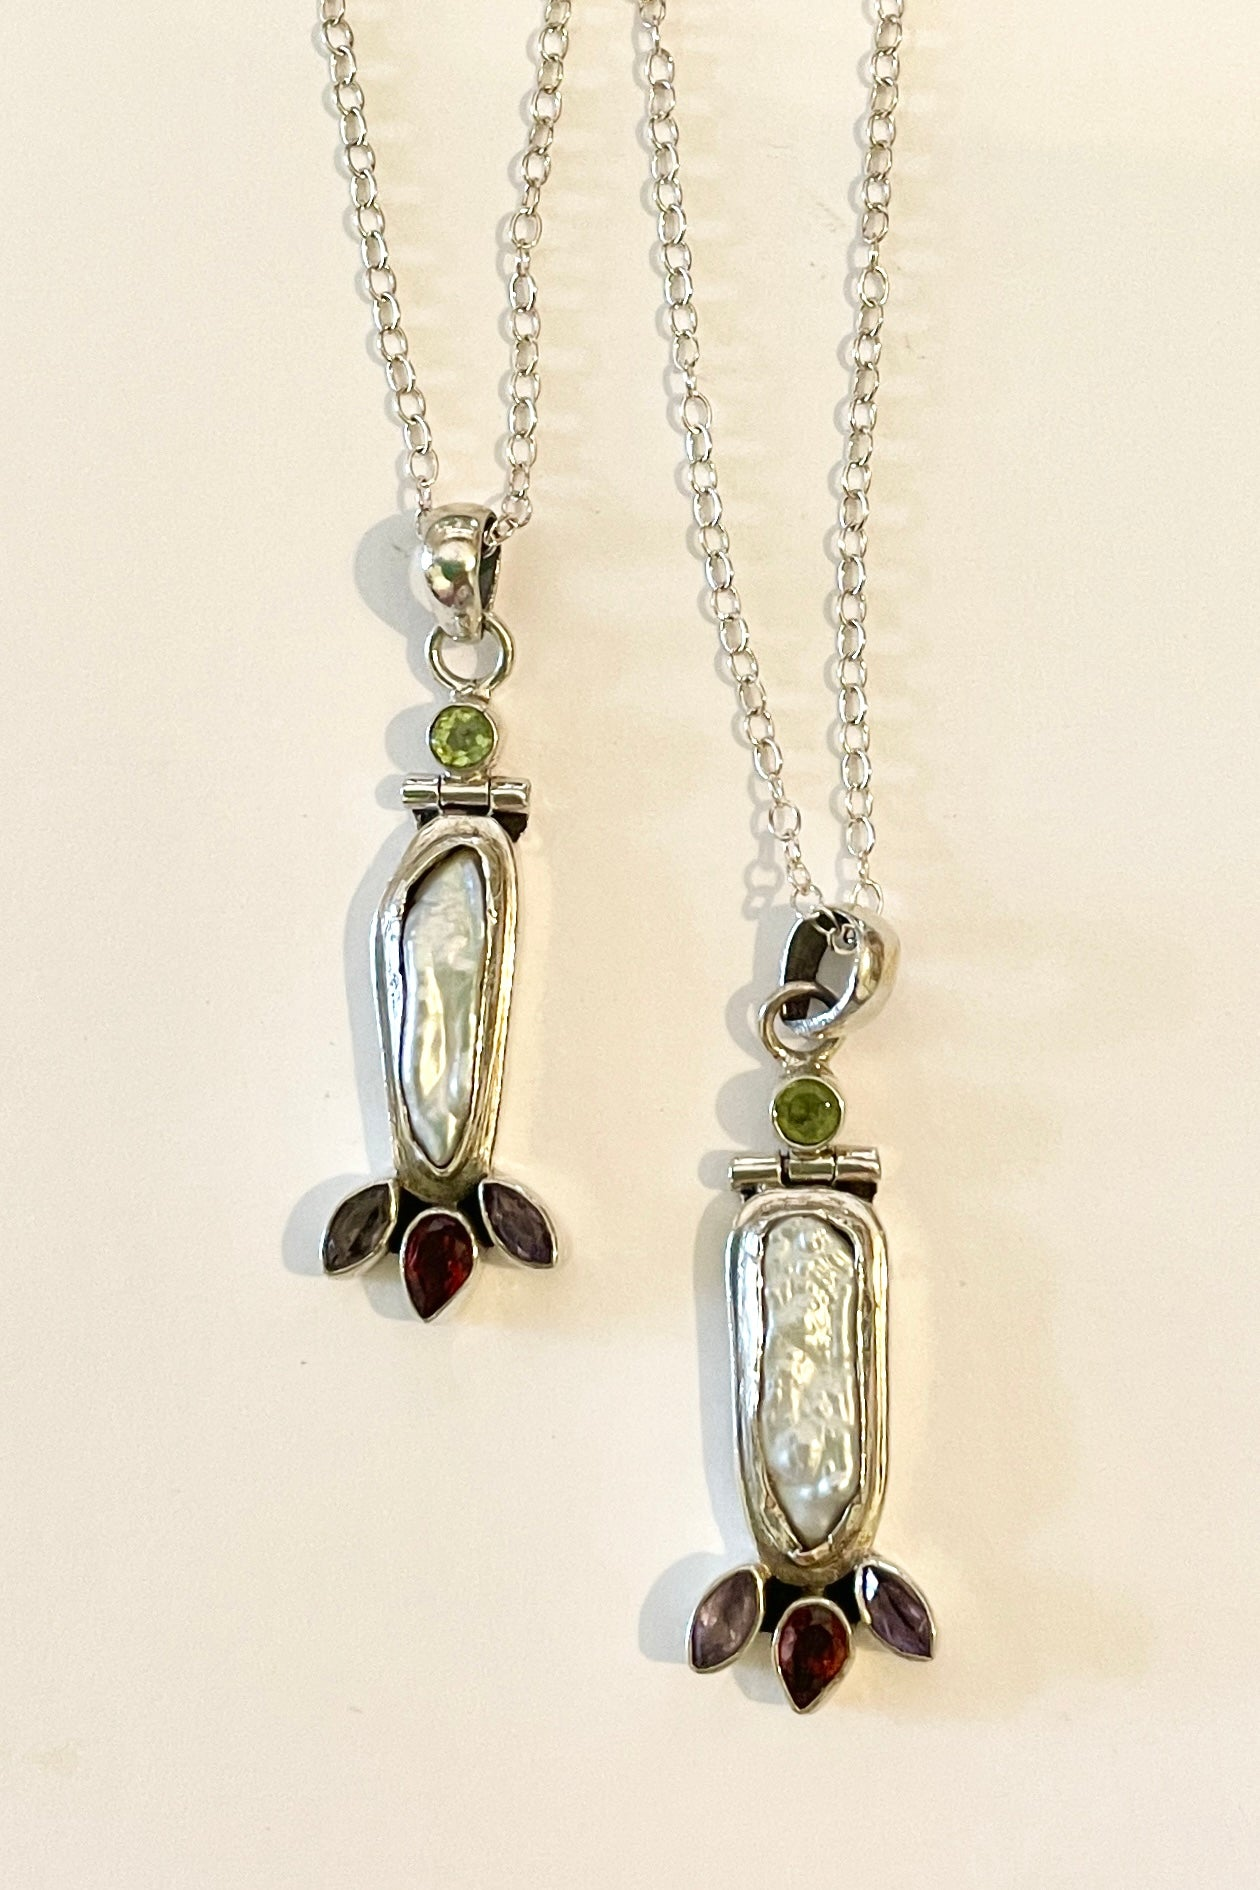 unusual handmade pendant featuring a freshwater pearl rim set in solid 925 silver